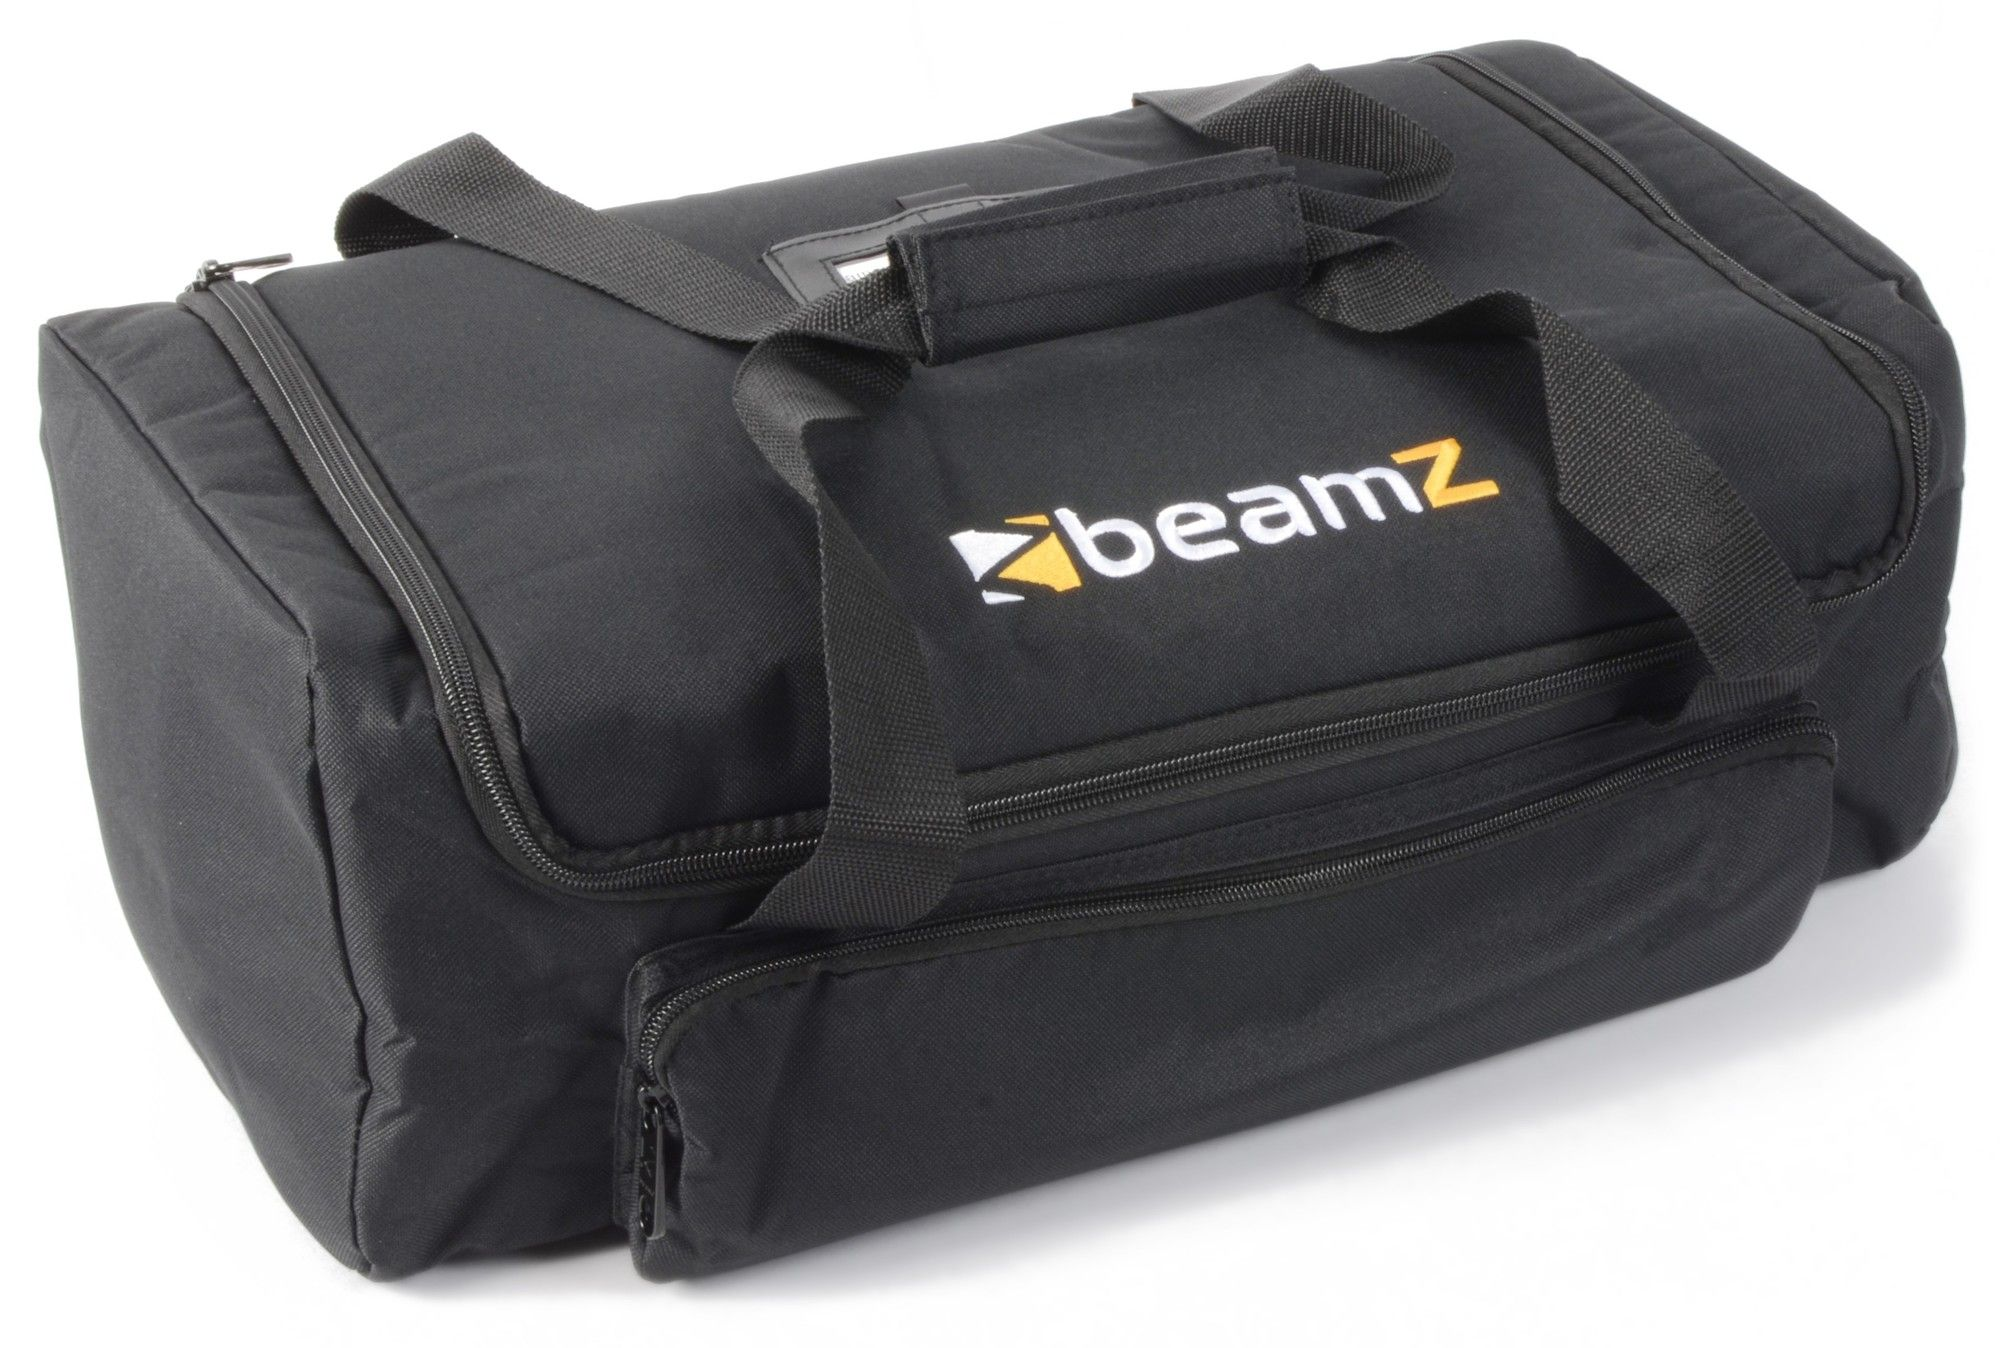 Beamz AC-135 flightbag 495 x 267 x 190mm